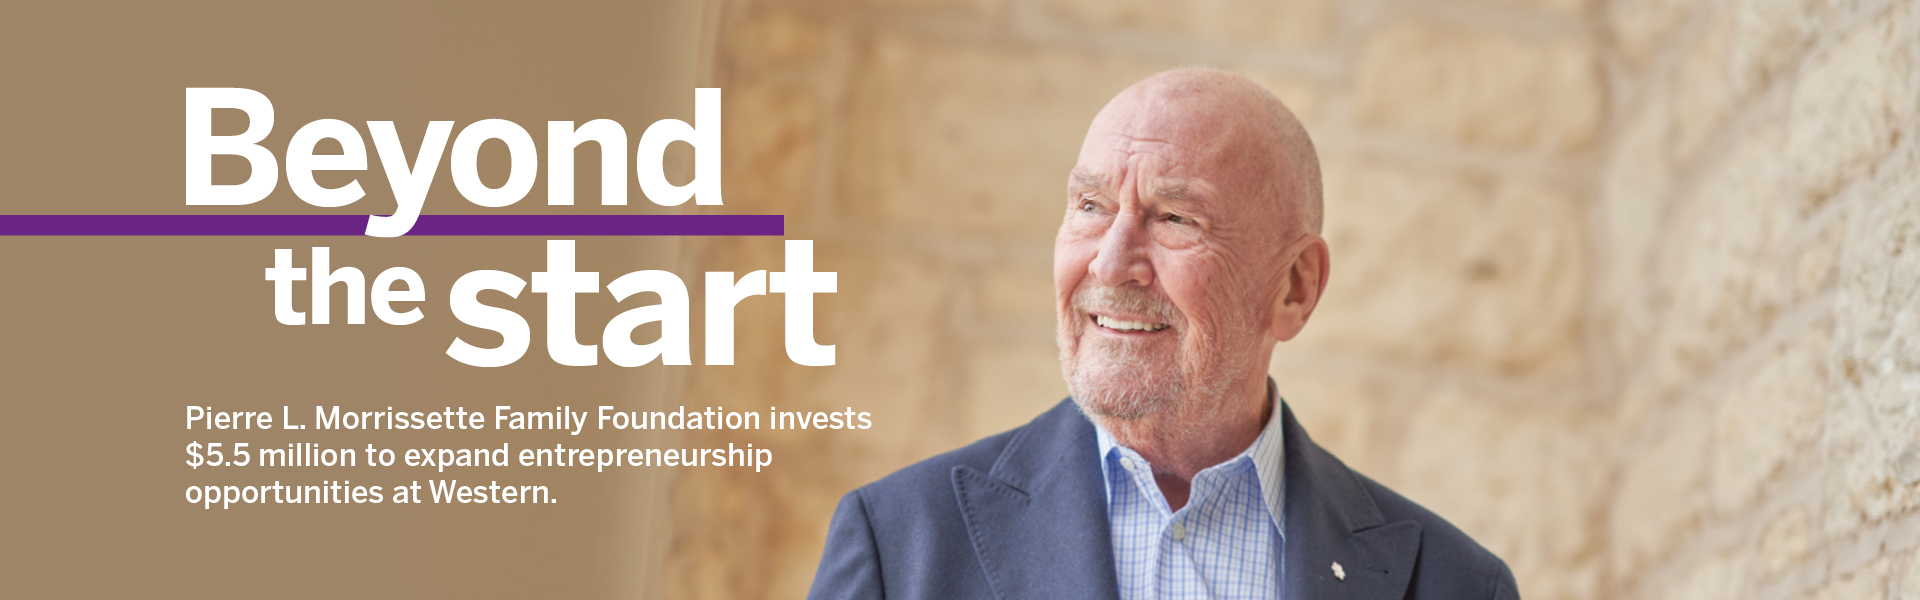 Beyond the start: Pierre L. Morrissette Family Foundation invests $5.5 million to expand entrepreneurship opportunities at Western